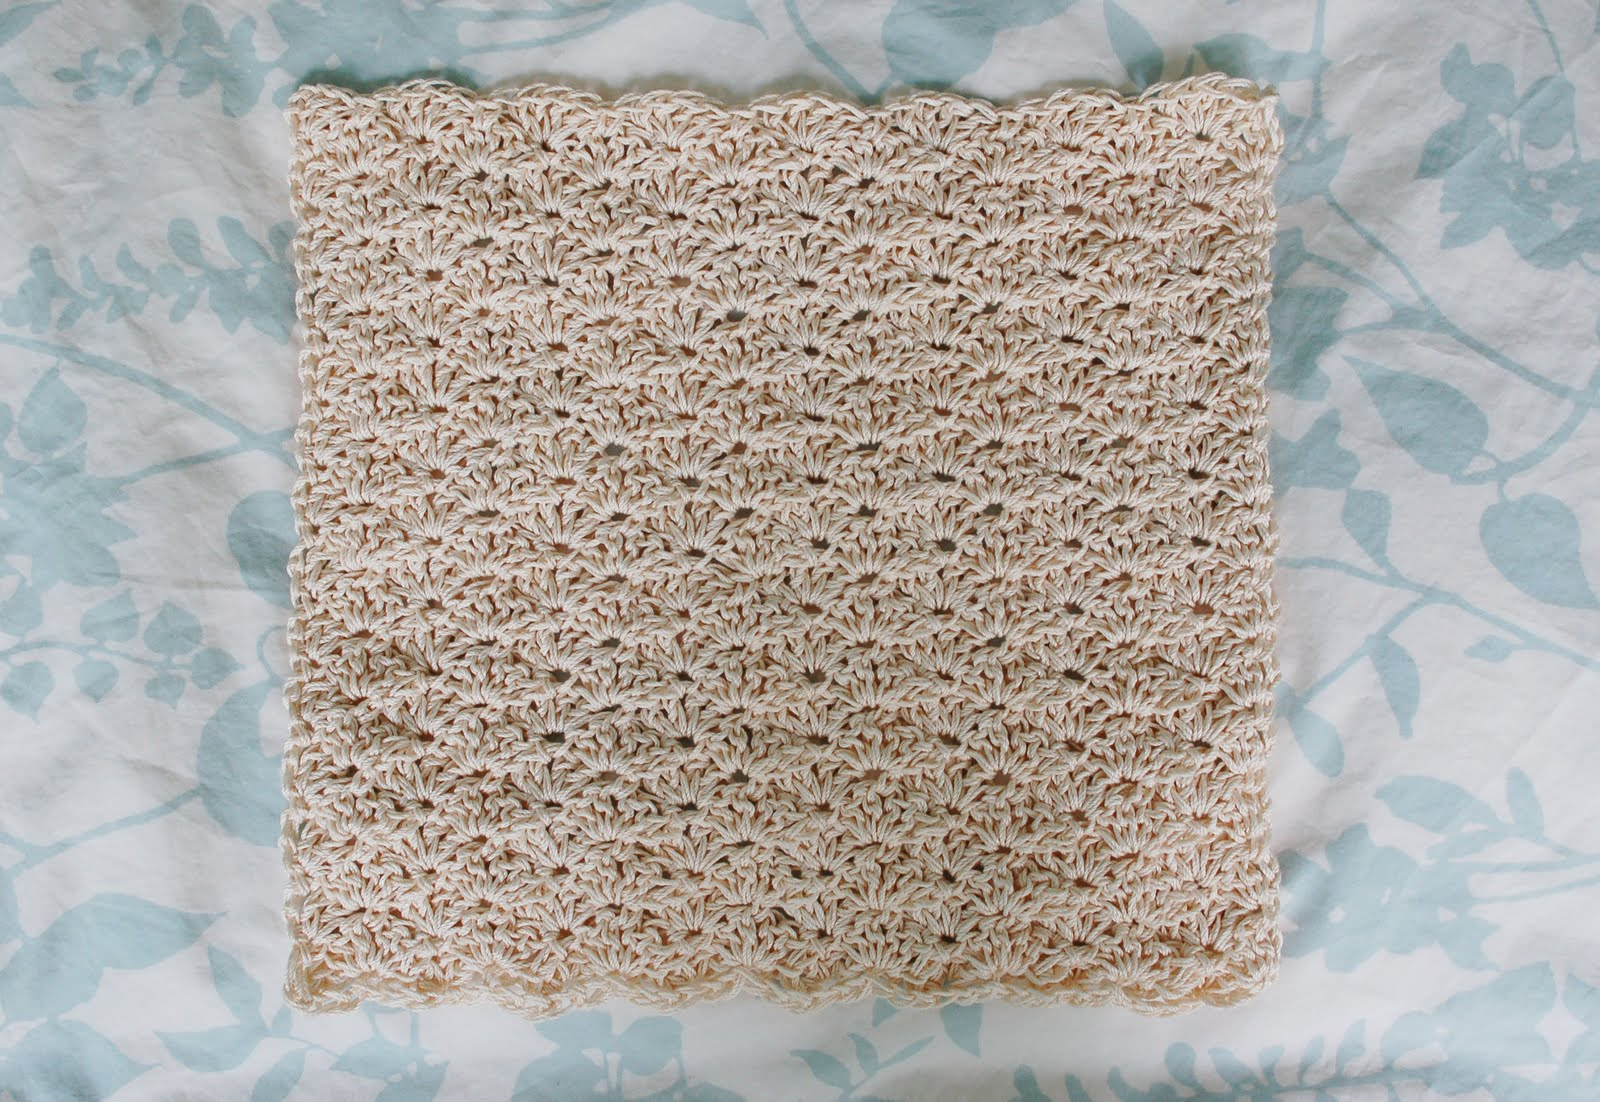 Crochet Patterns Using Cotton Yarn : Alli Crafts: Free Pattern: Size 3 Thread Washcloth Close Scallop ...